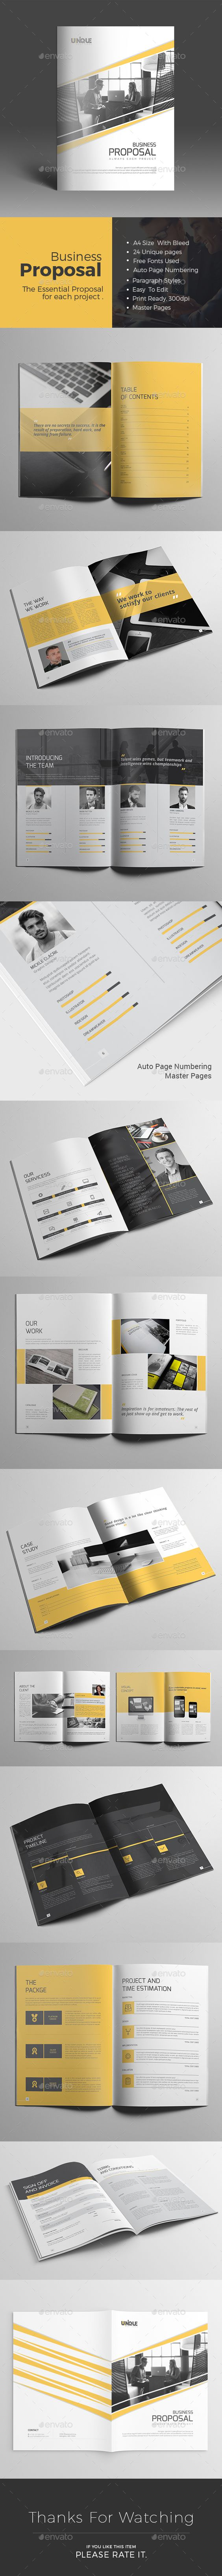 Business Proposal 24 Pages Template InDesign INDD #design Download: http://graphicriver.net/item/business-proposal/14278428?ref=ksioks